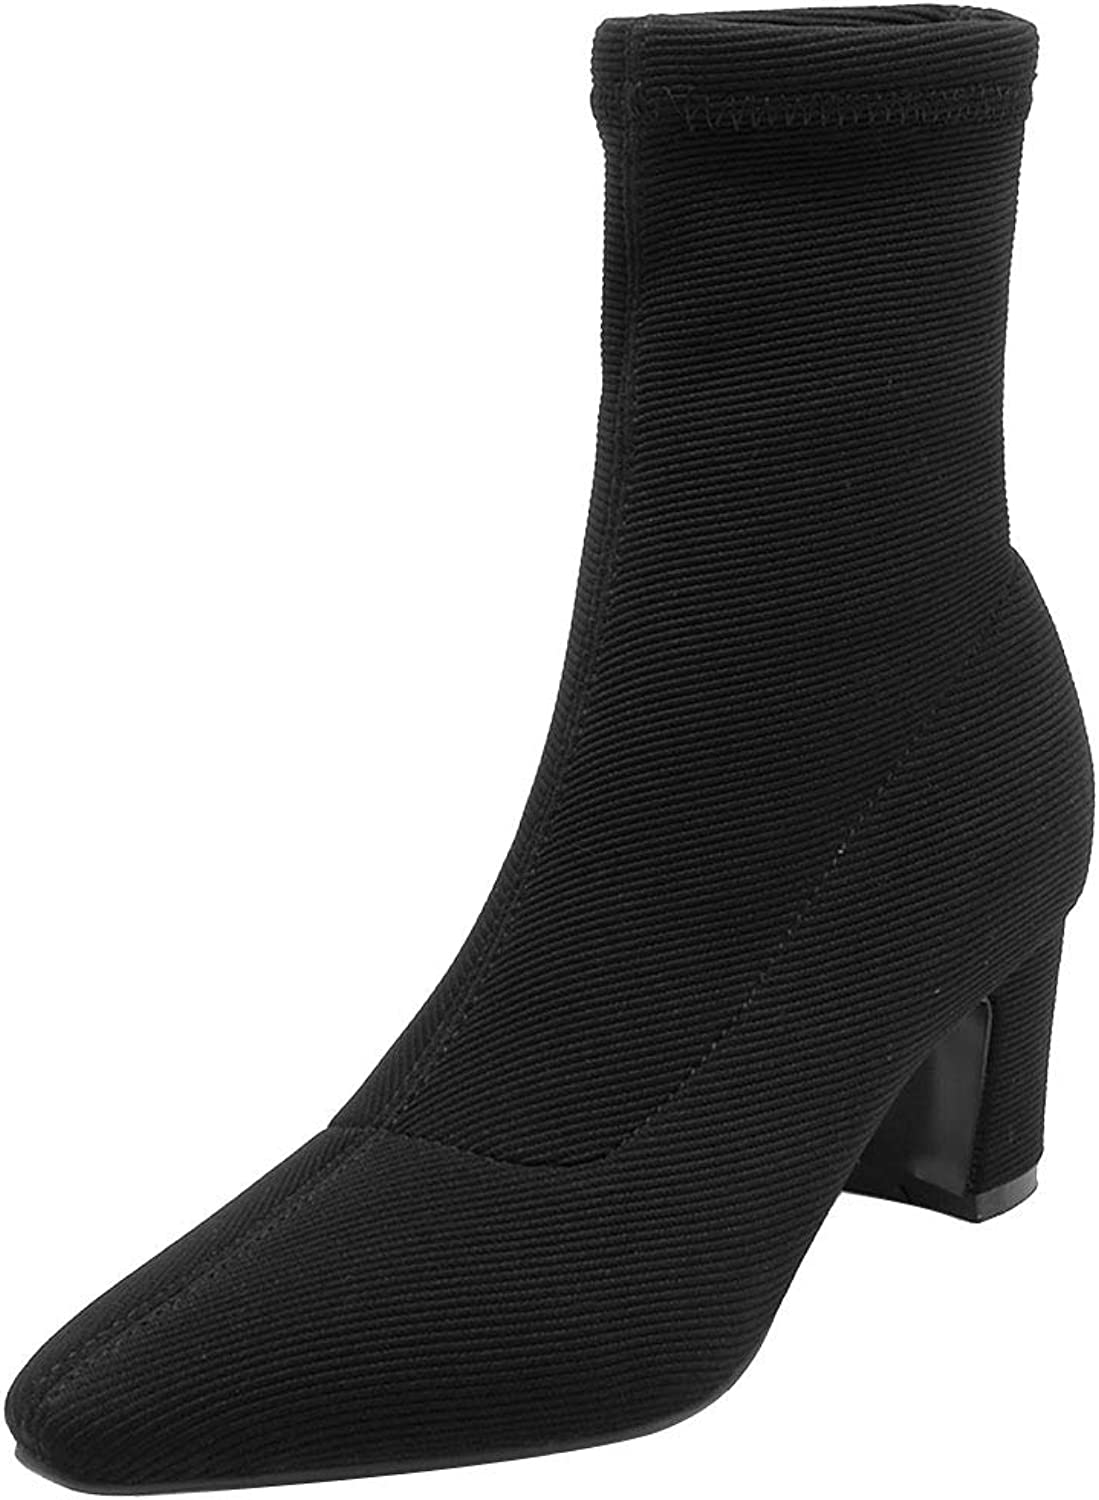 Luis Vuis Lady Block Heel Stretch Boots Pointed Toe Sexy